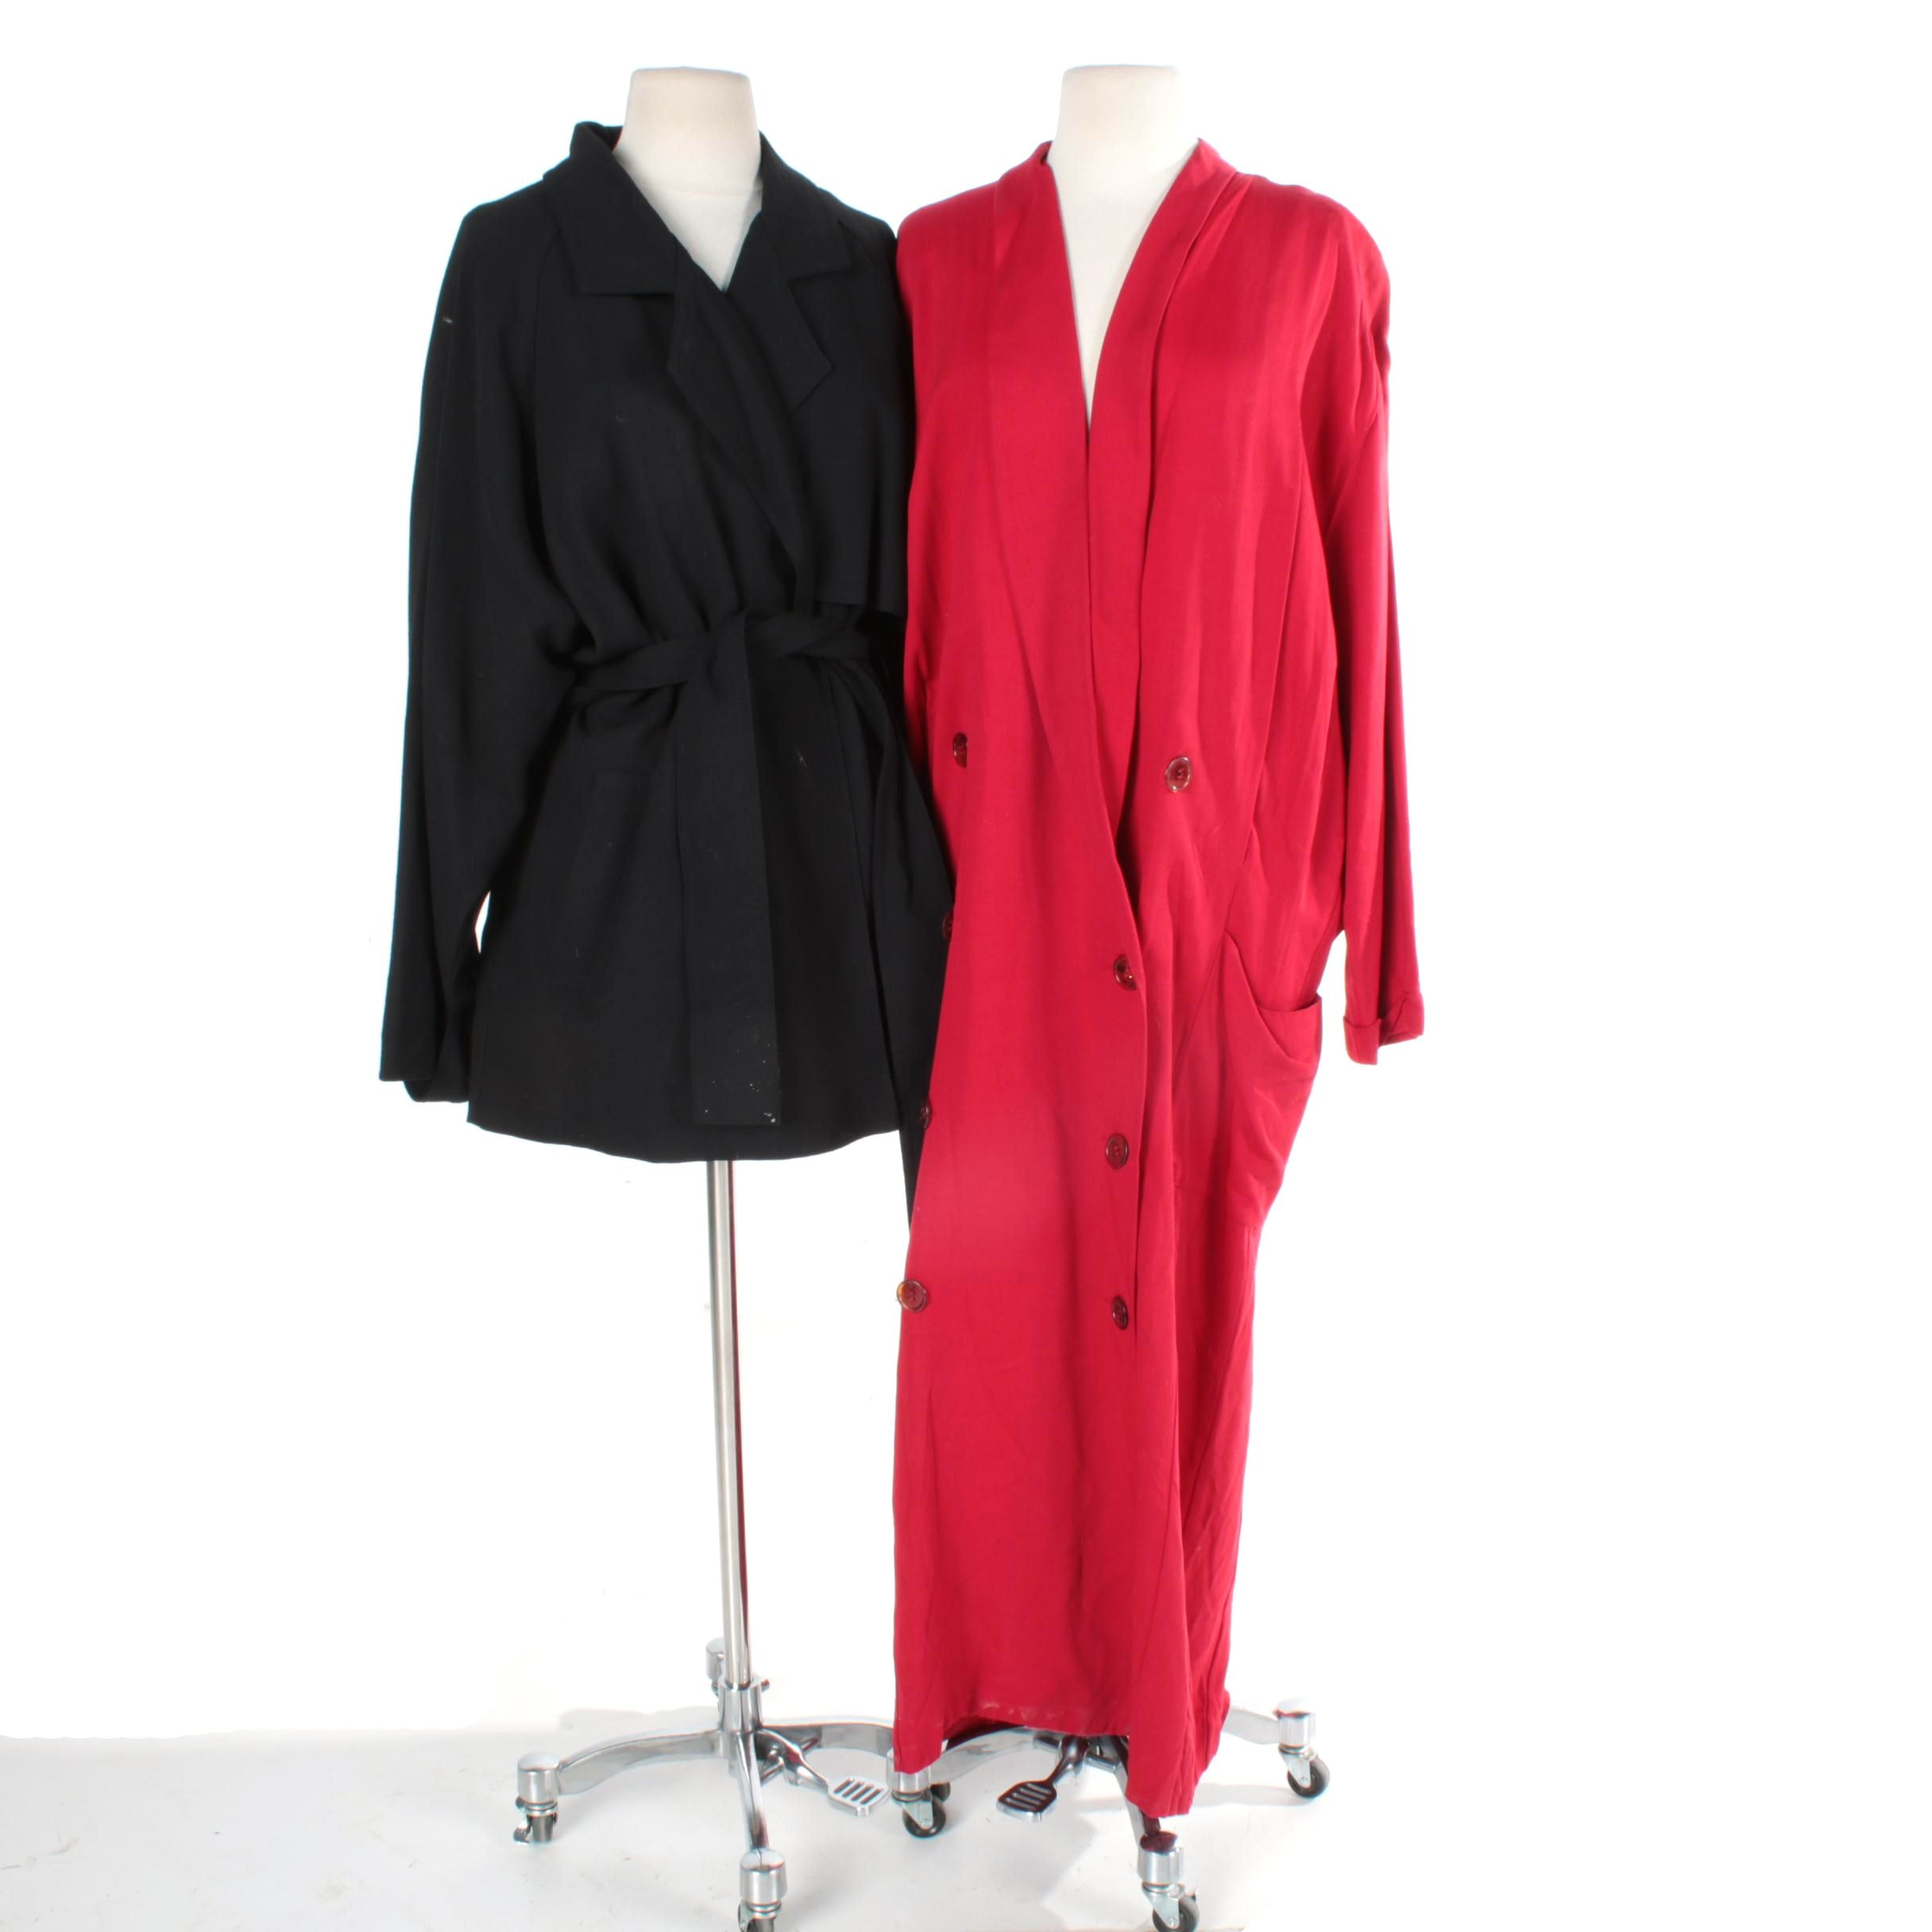 Women's Coats Including Michael Kors